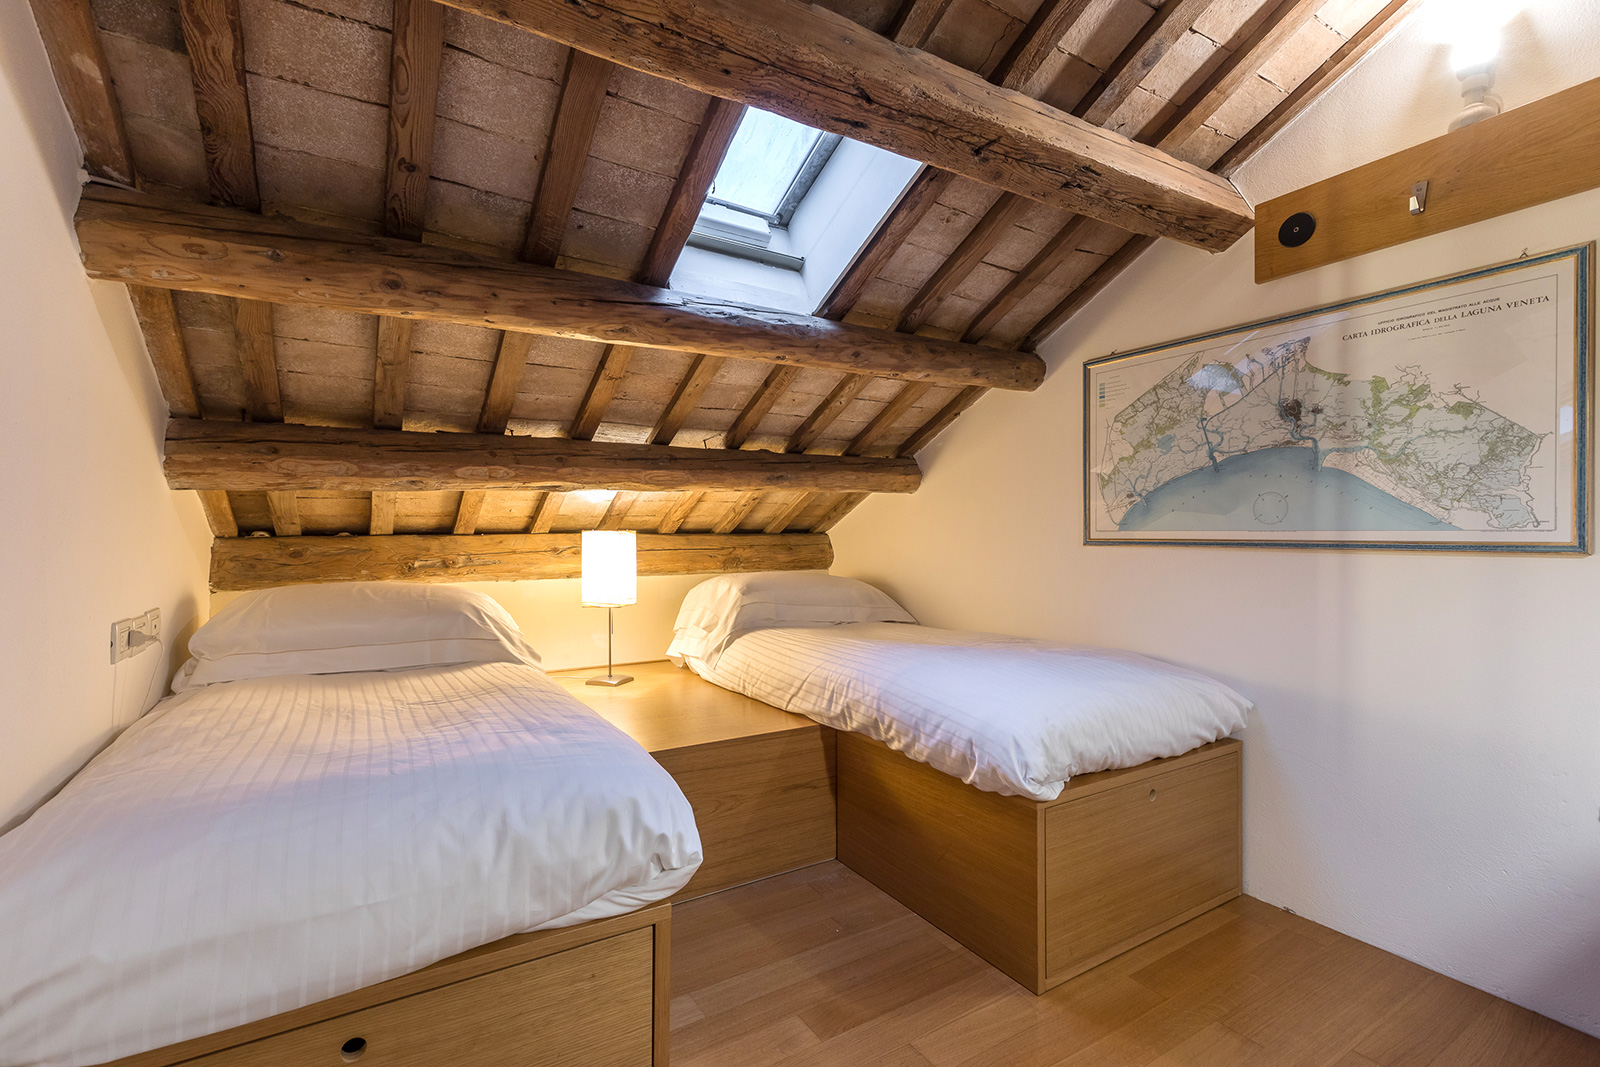 in the attic room there is a large futon that can be used as 2 single beds...